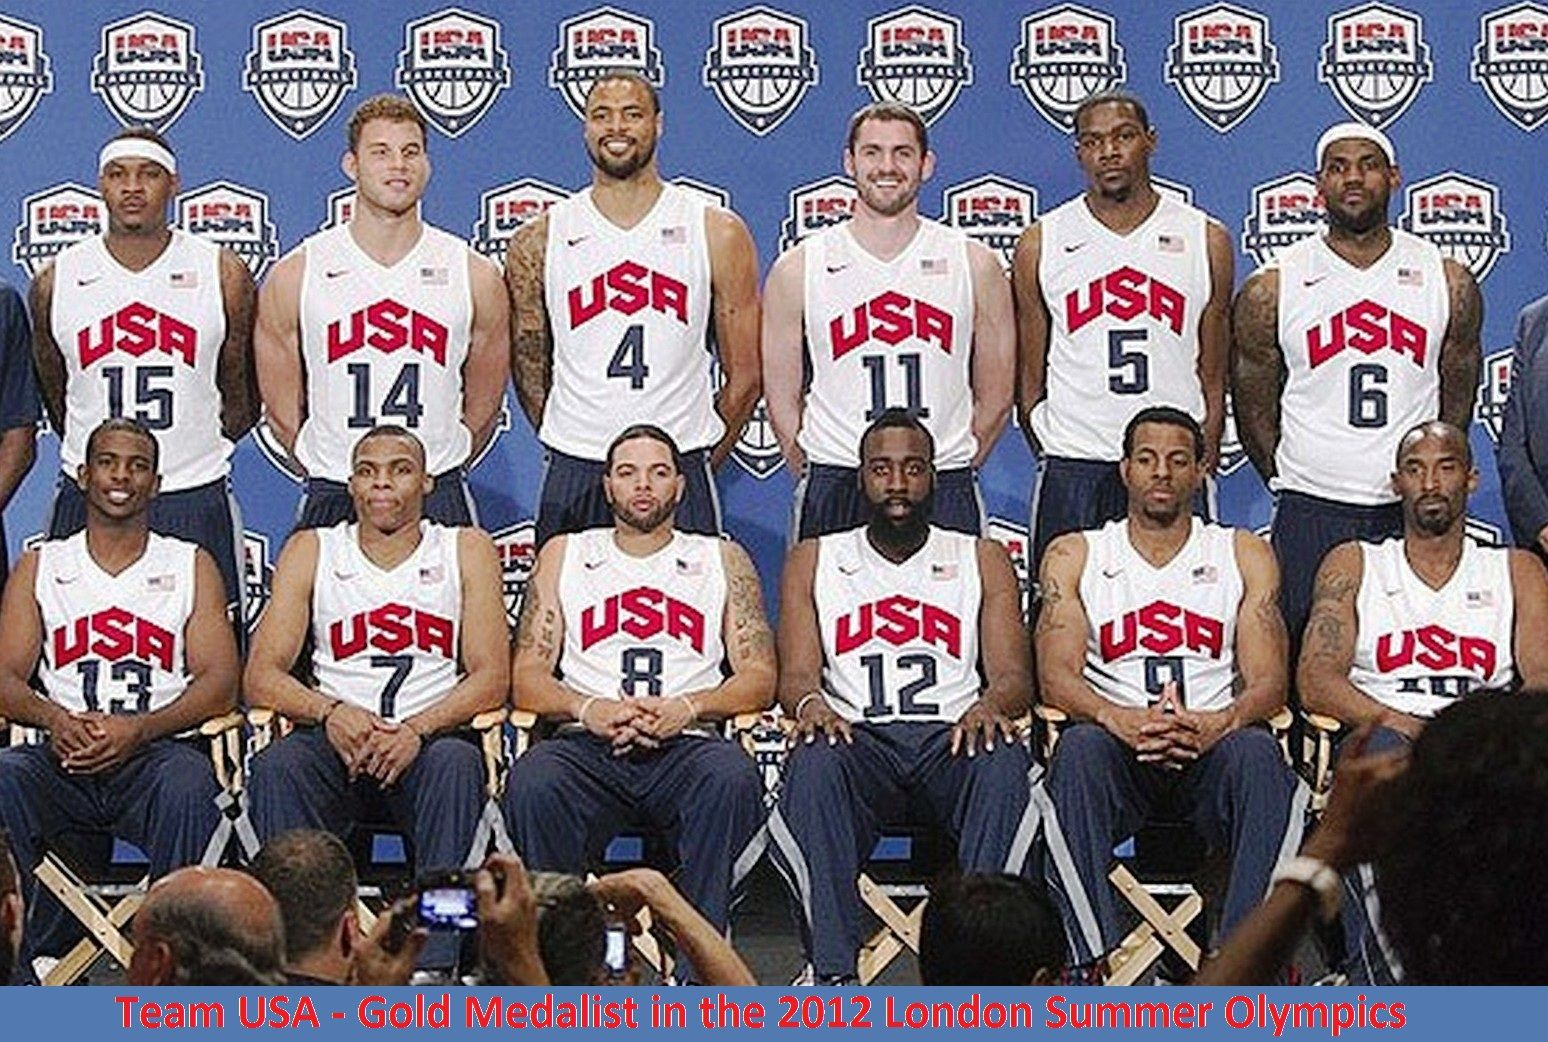 US Basketball Team Wins the Gold in the 2012 London